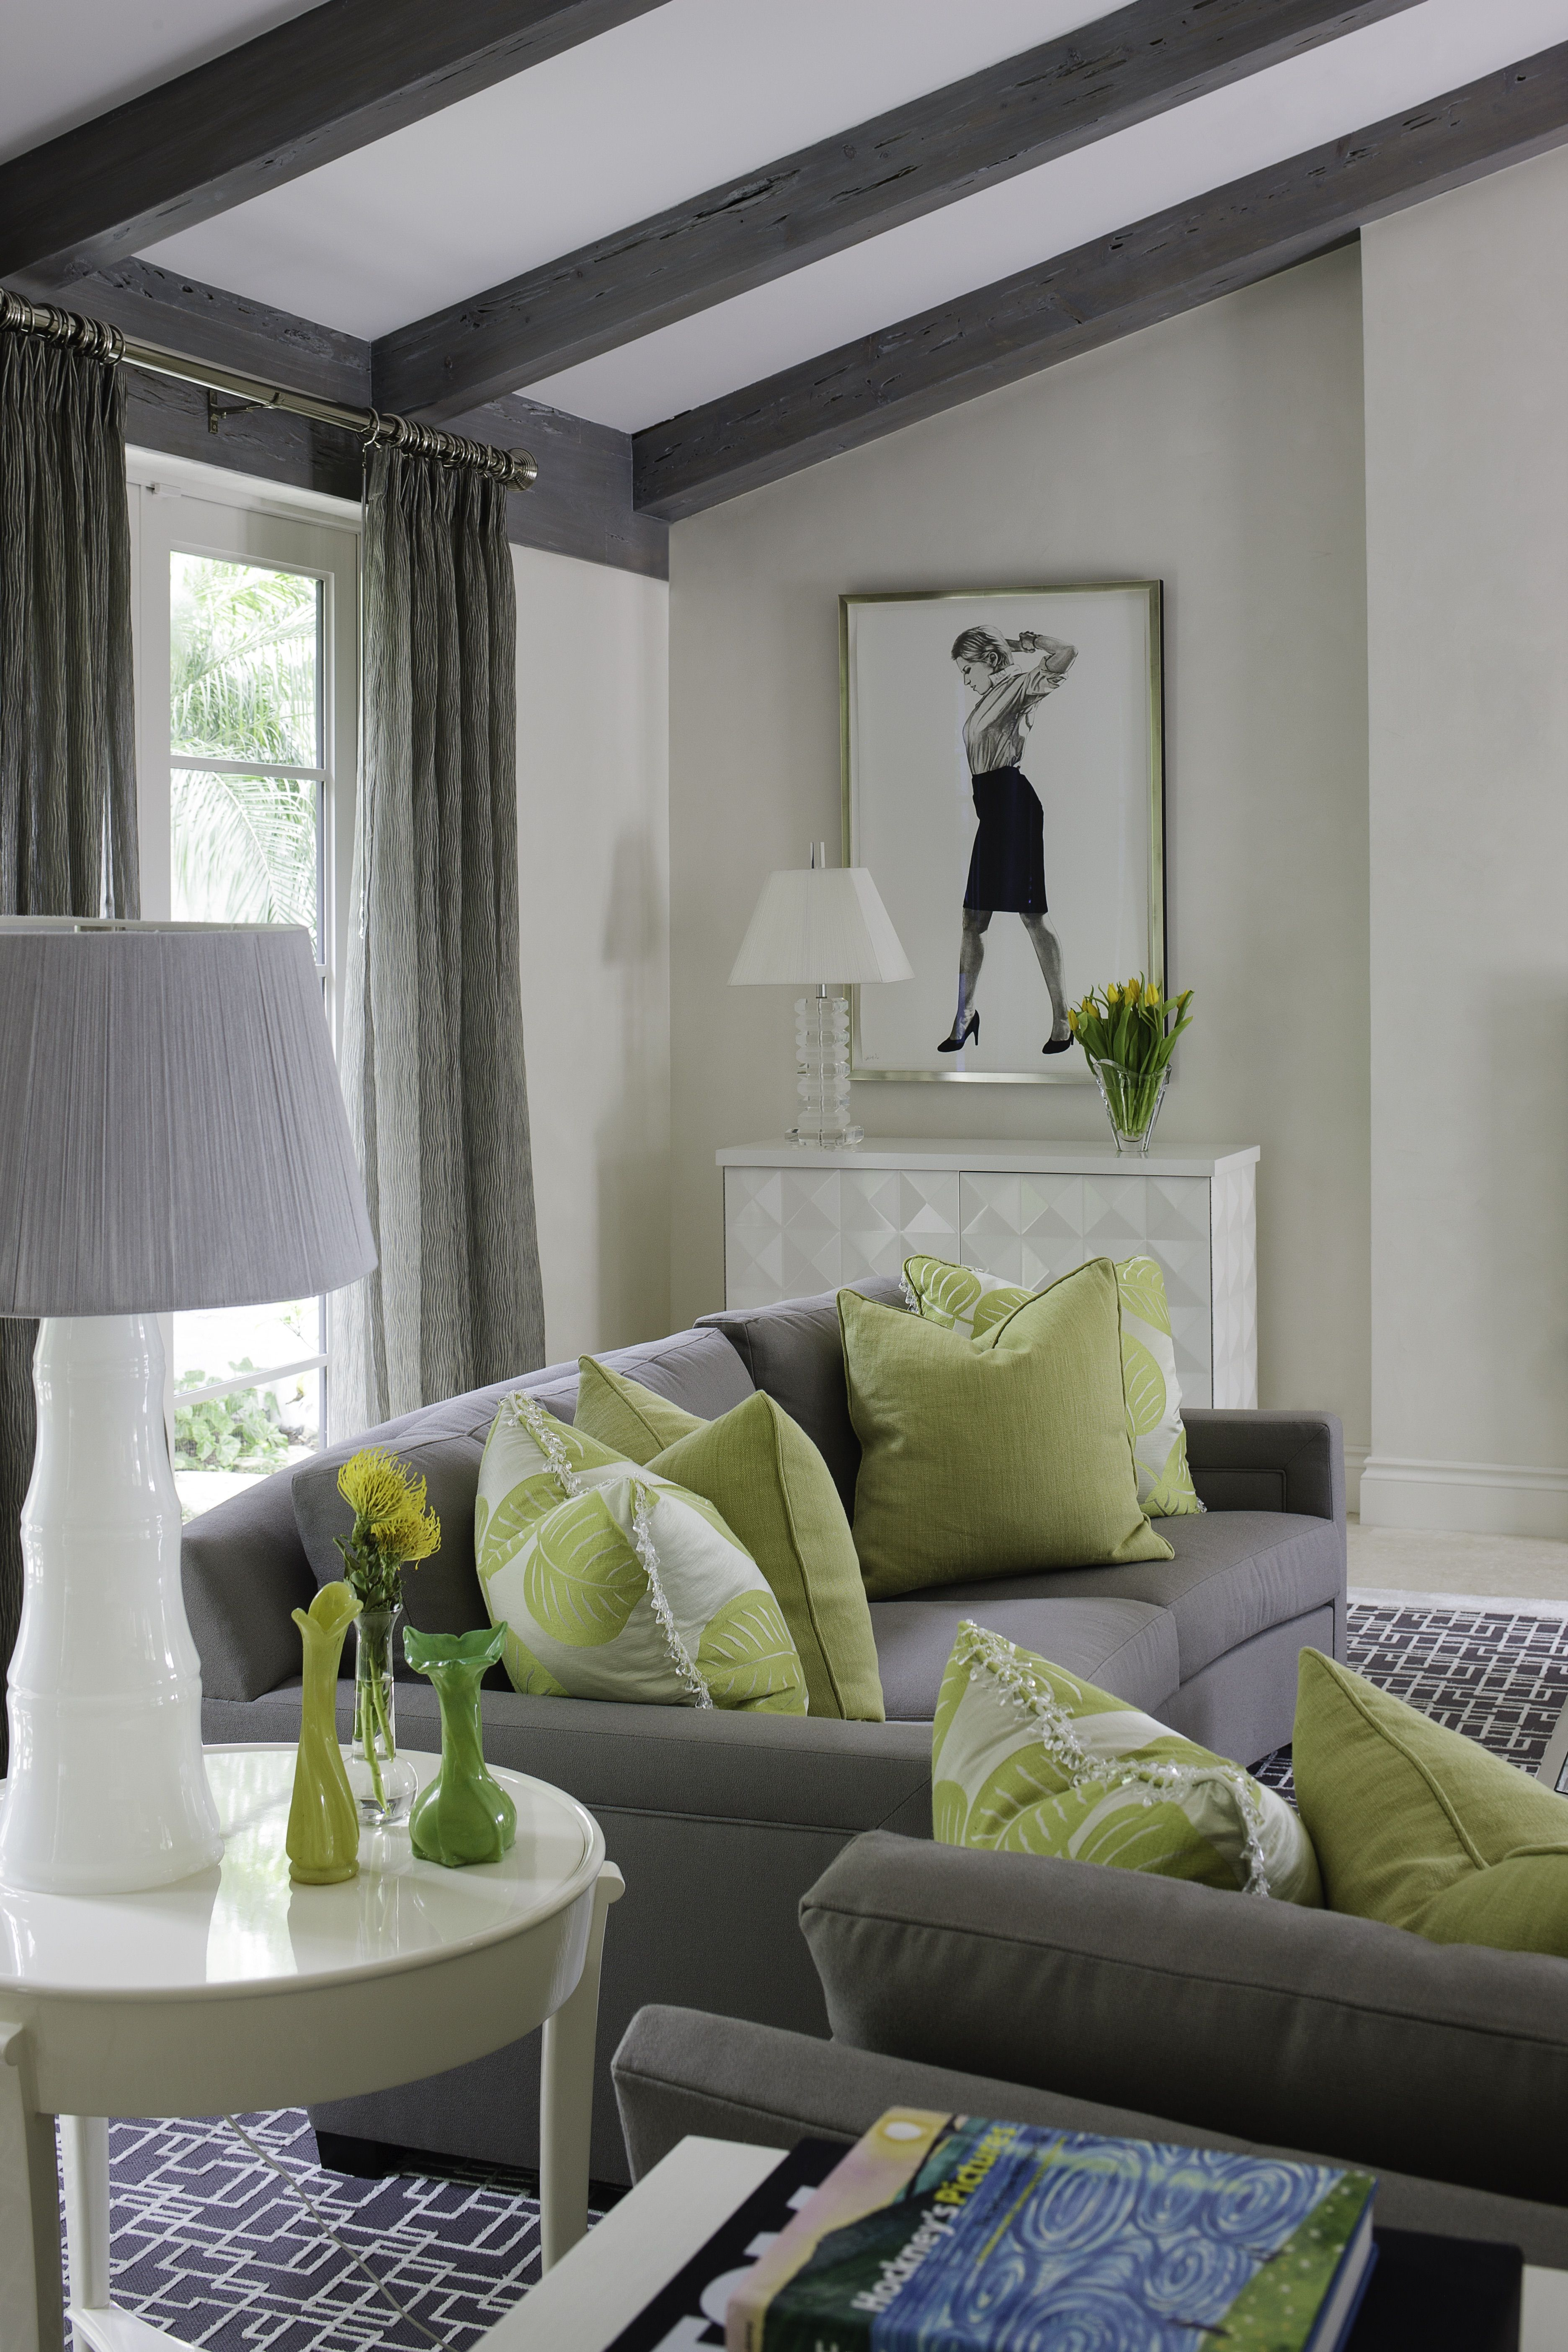 lime green living room decorations white coffee table sitting area accent pillows interiordesign transitional decor